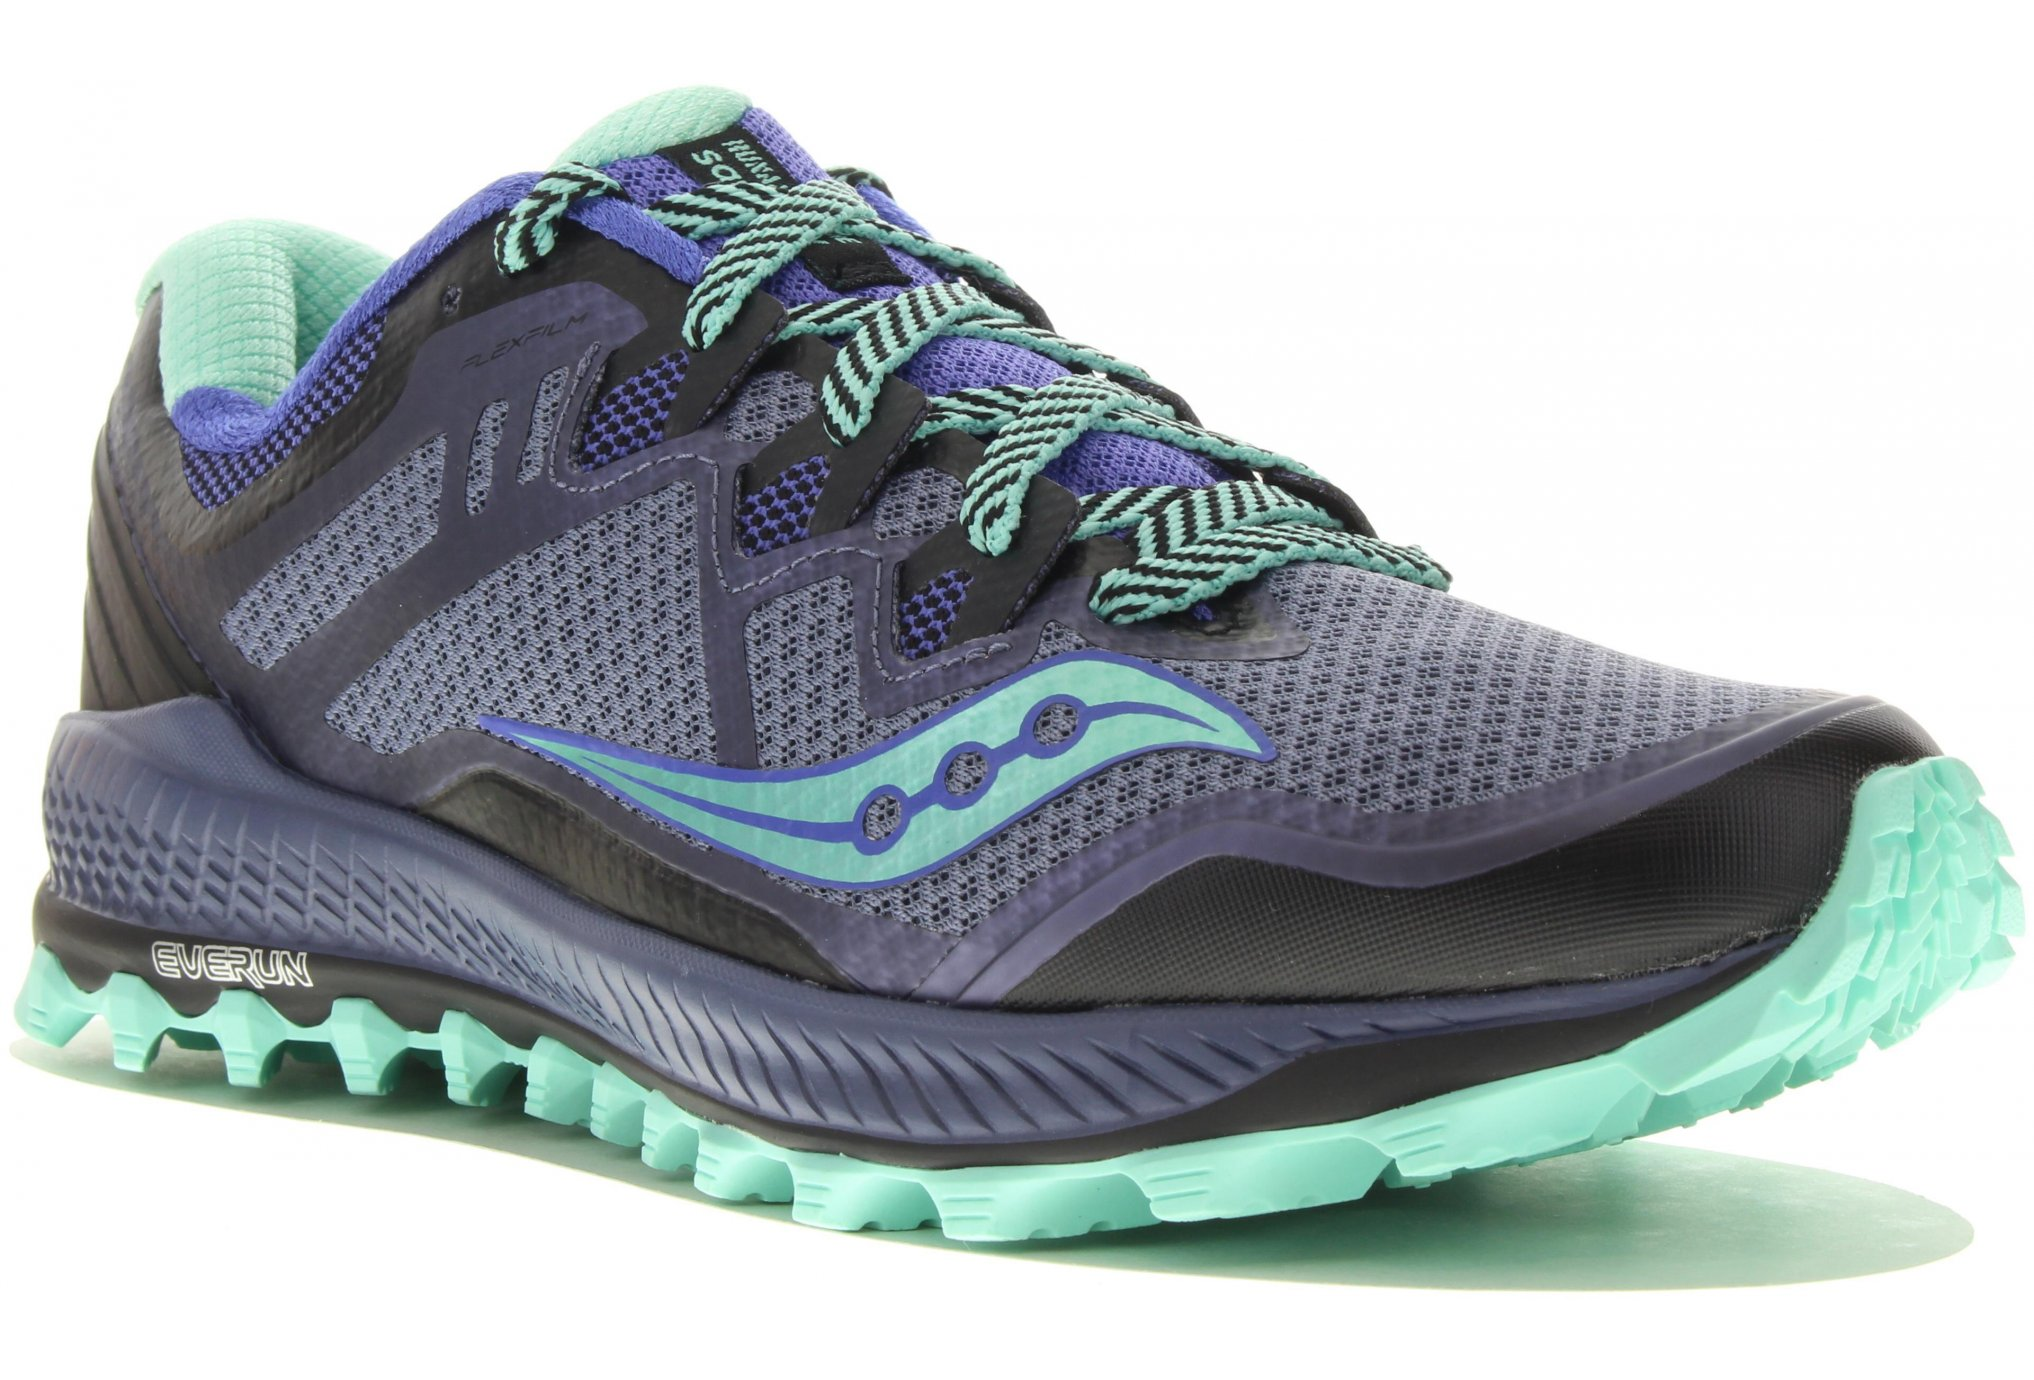 f398620c756 Trail Session - Saucony Peregrine 7 Ice W Chaussures running femme